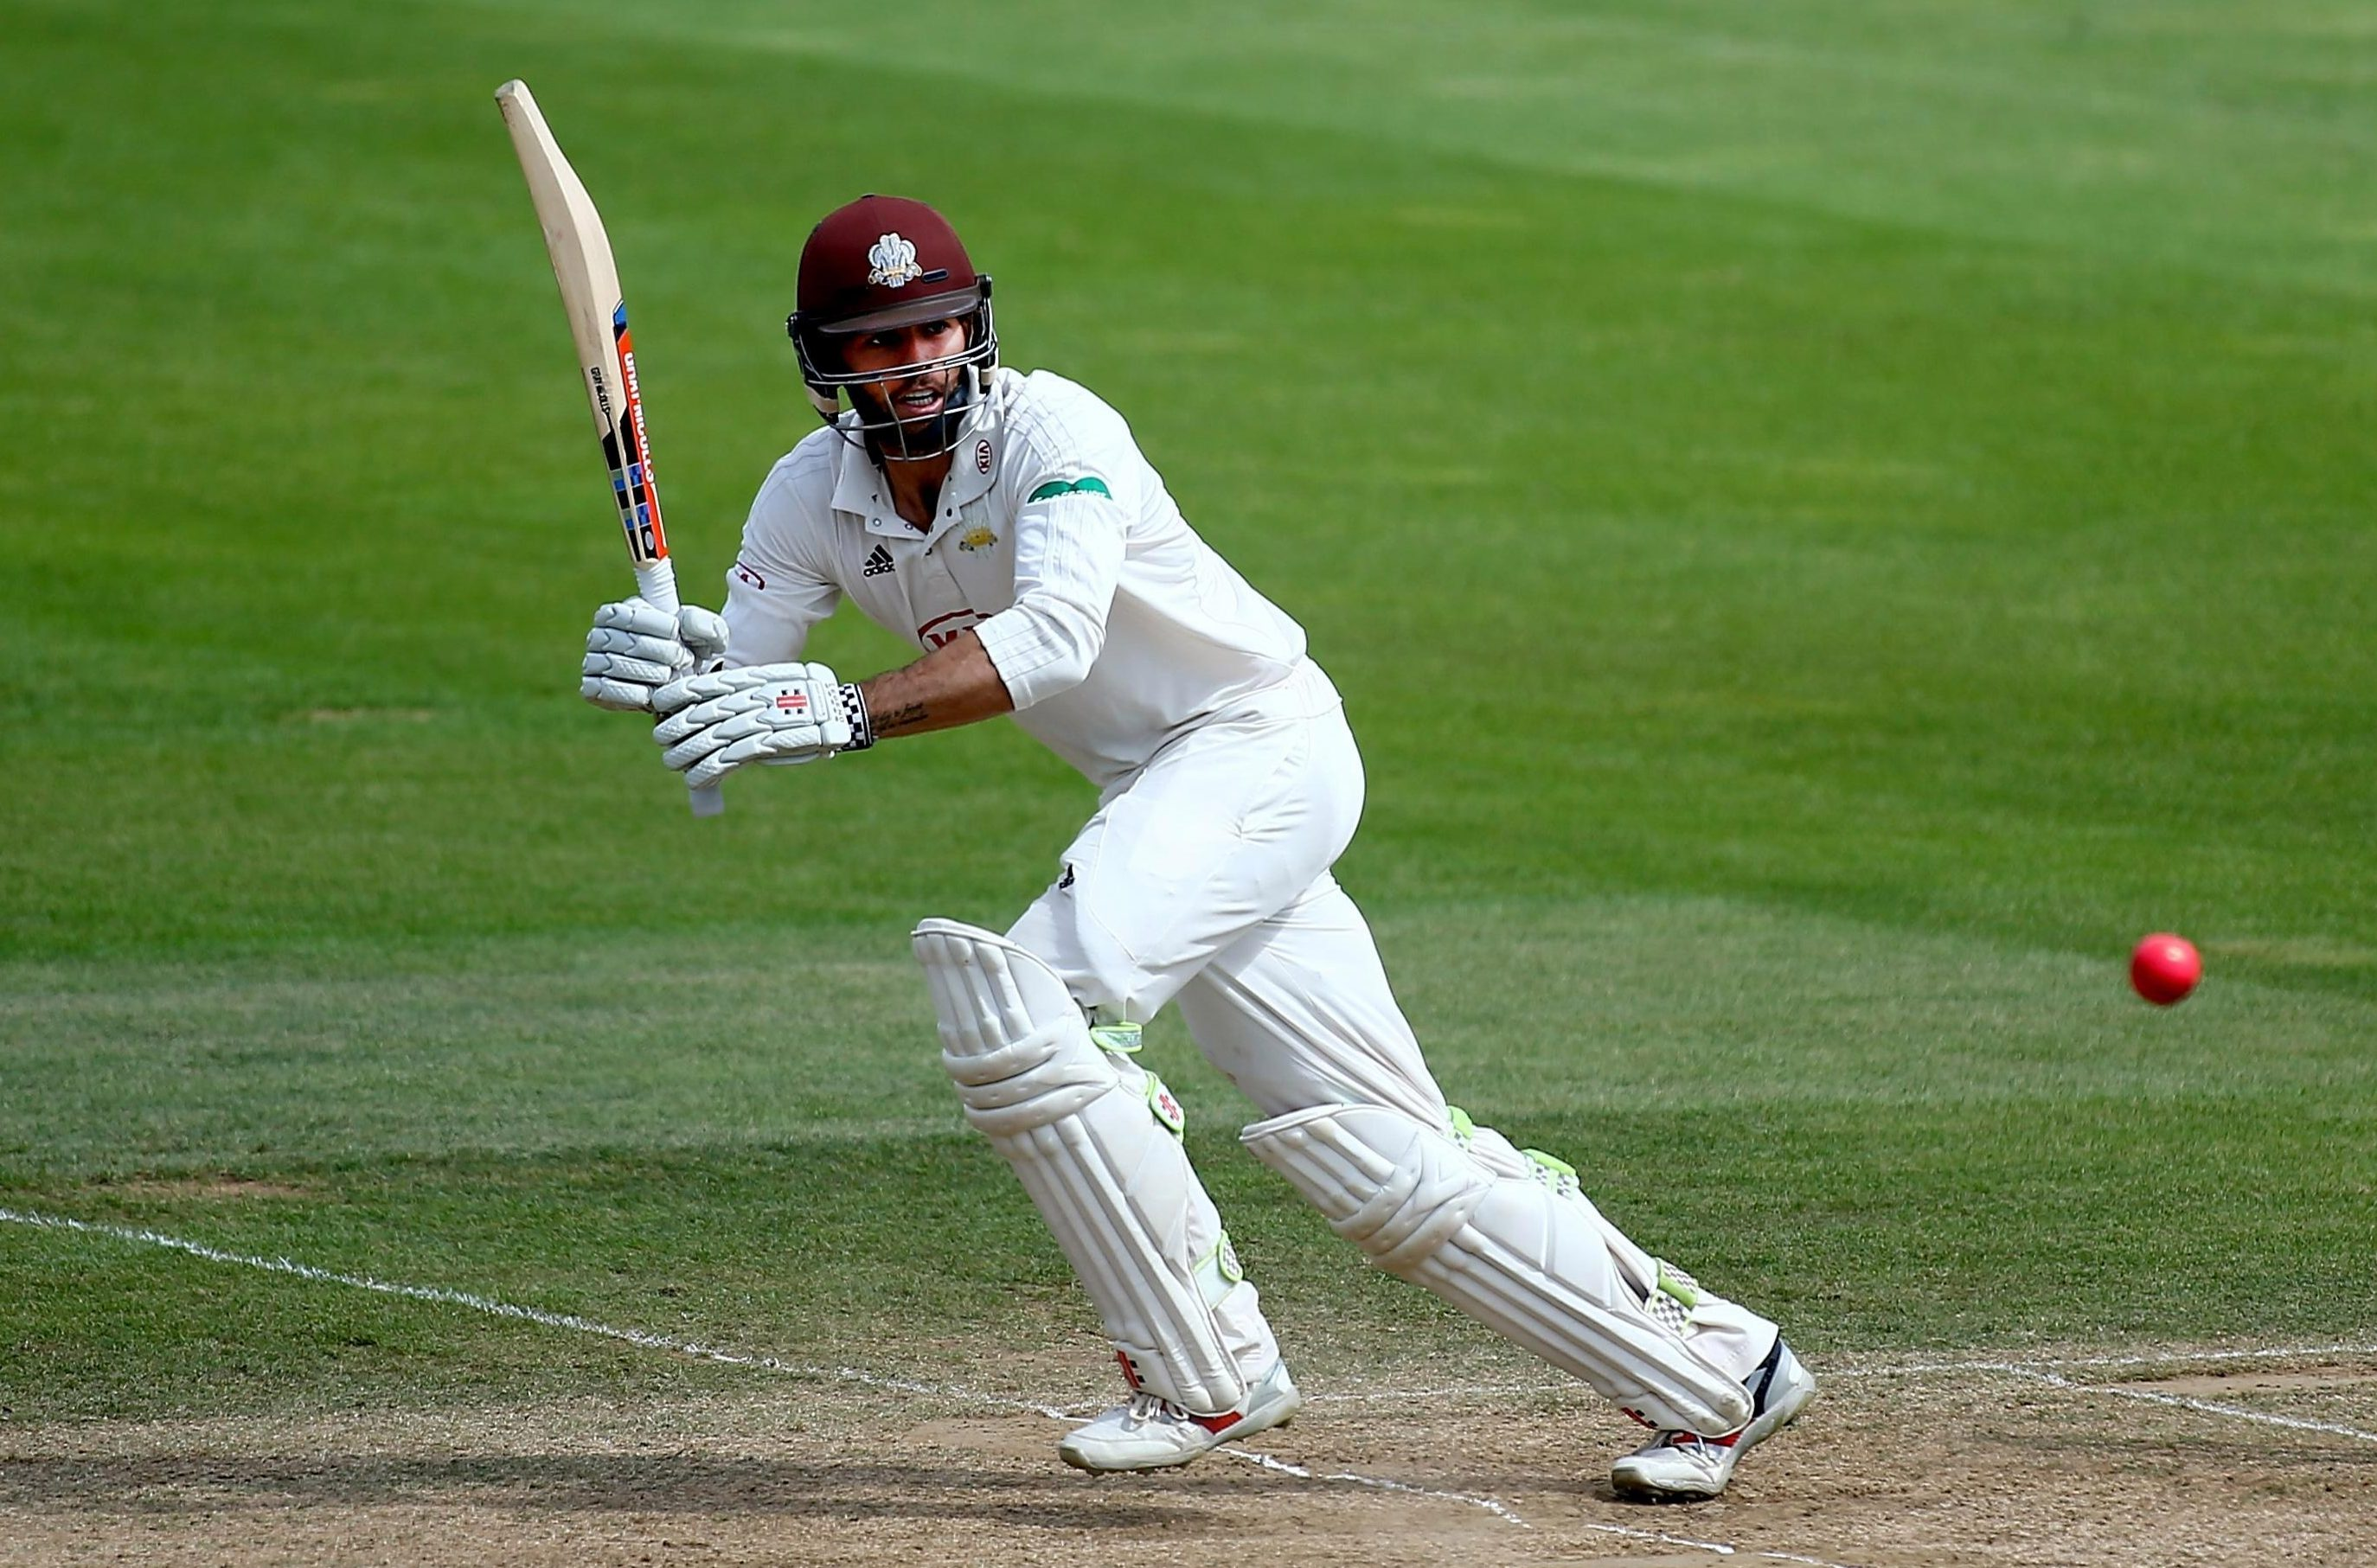 Ben Foakes is rated the best wicketkeeper in the world by former England batsman Alec Stewart and could get a winter call-up against Sri Lanka